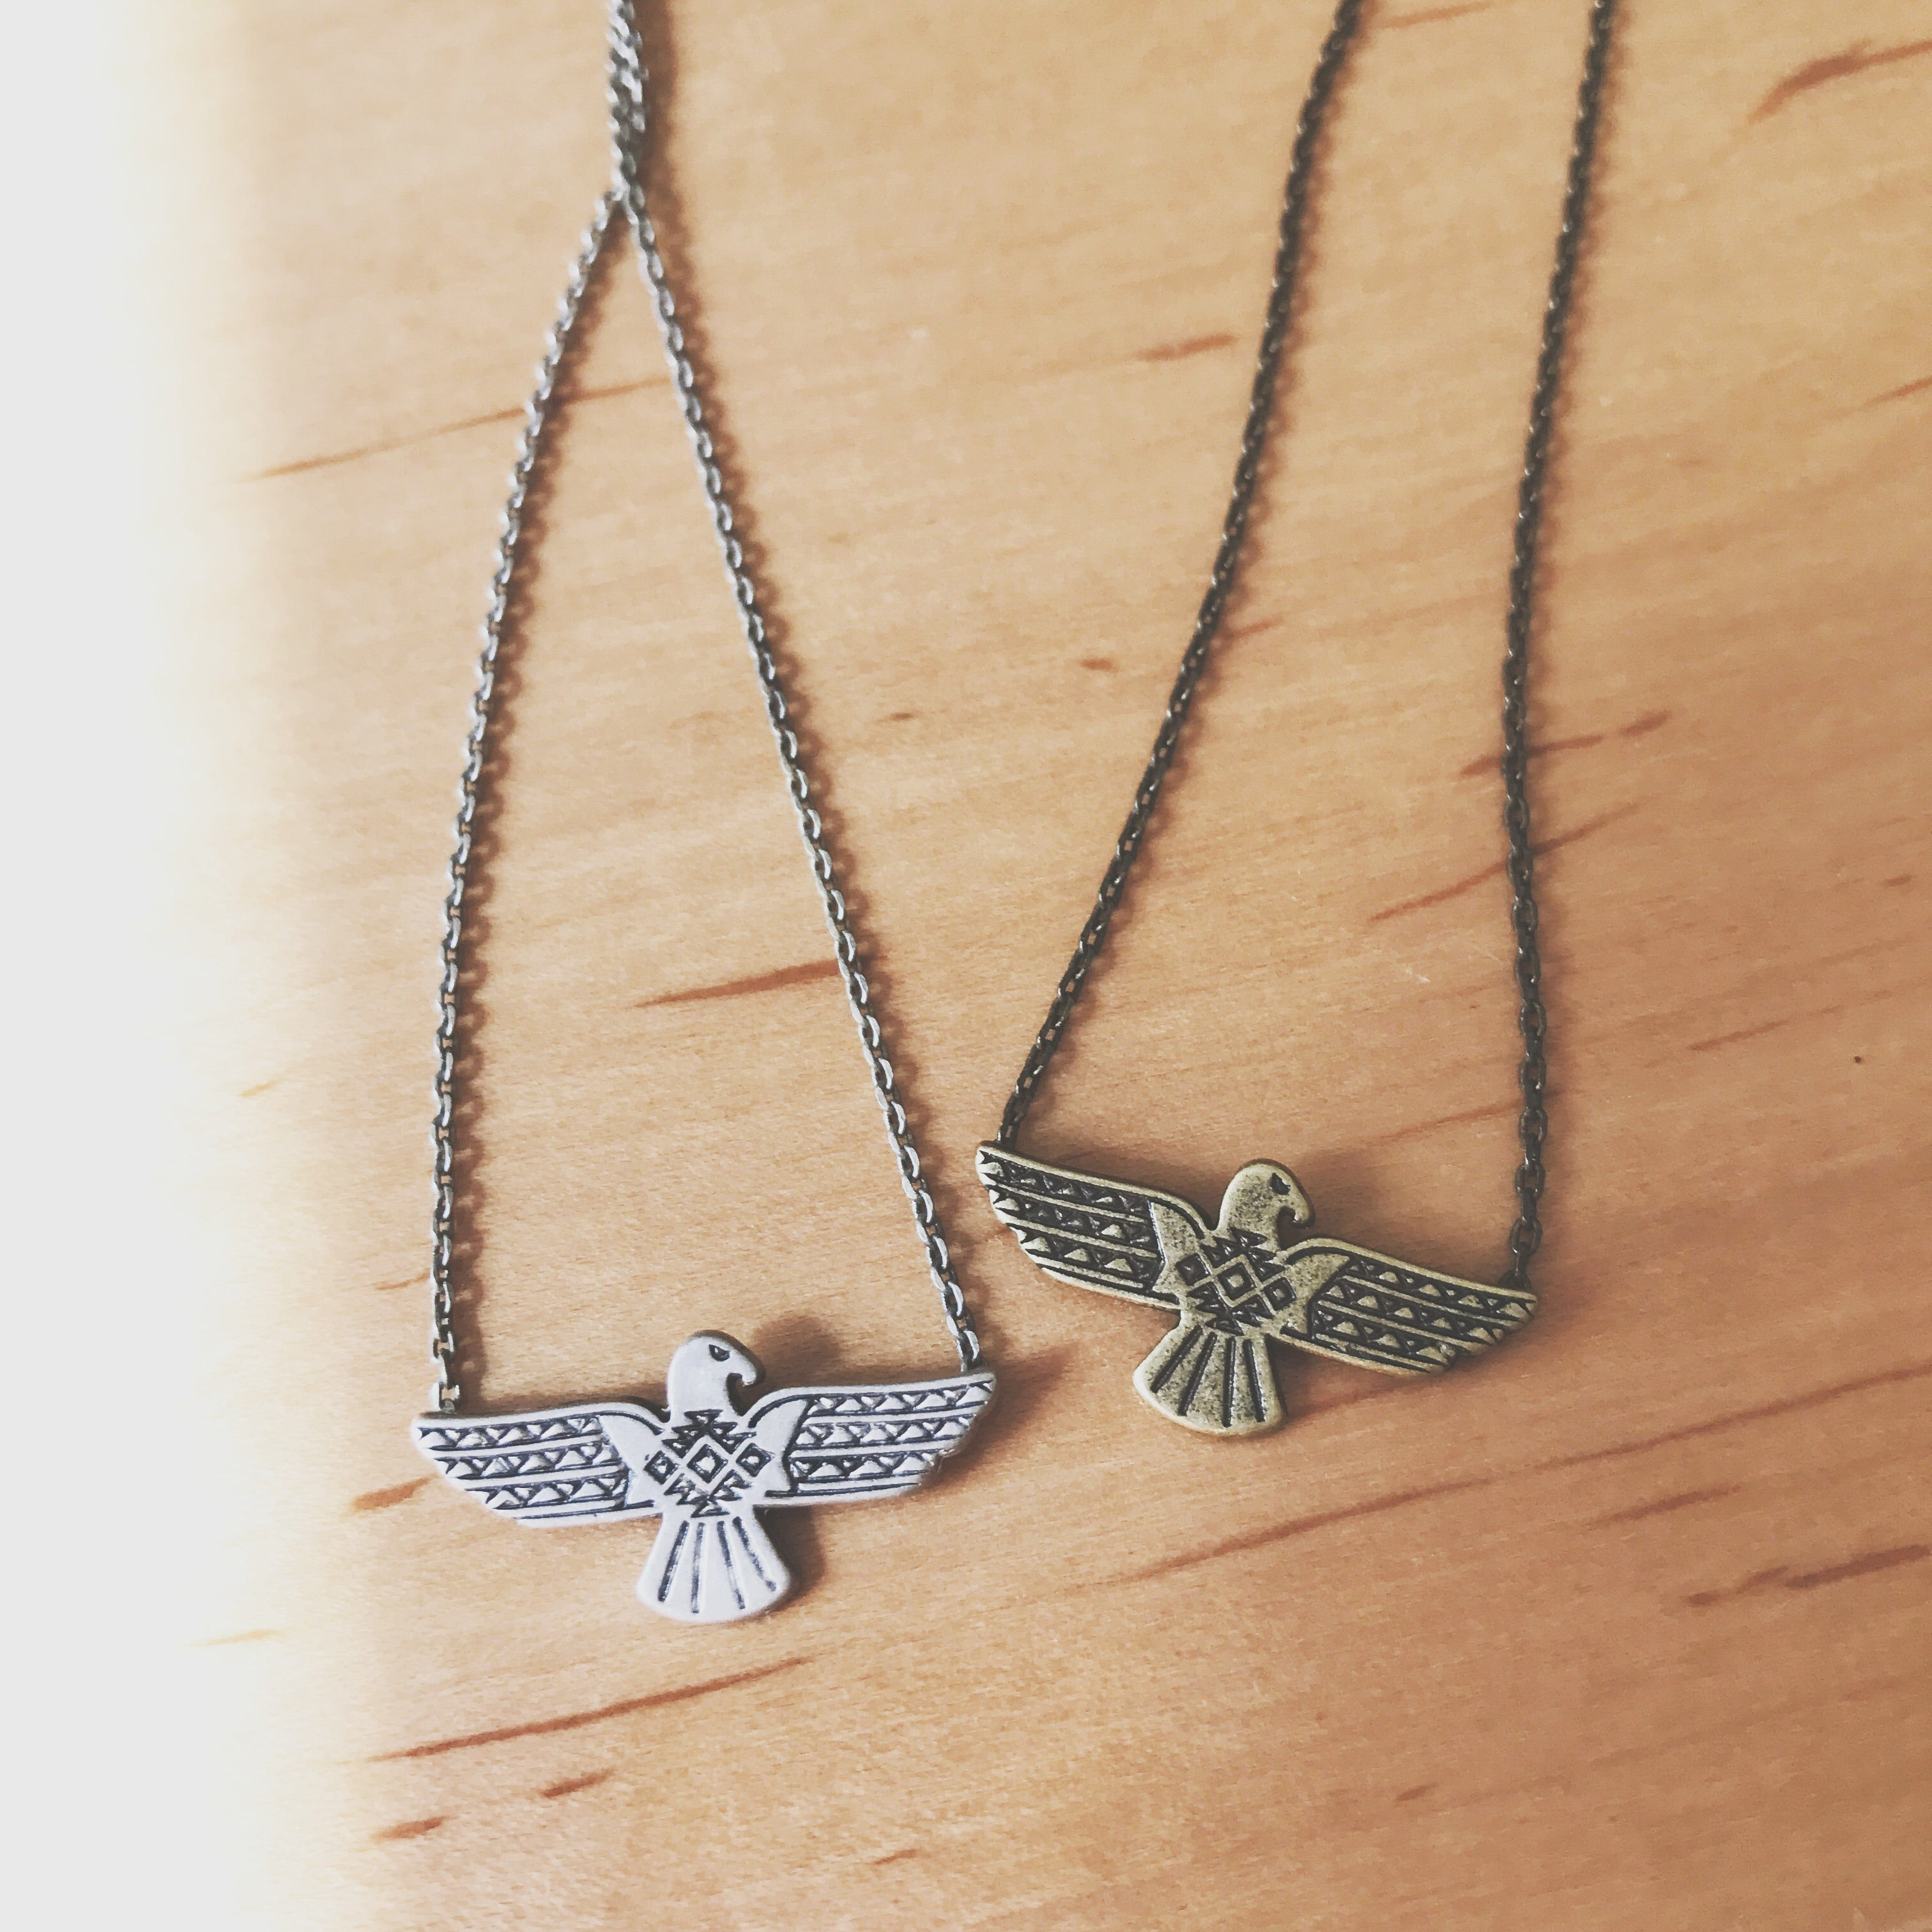 ANTIQUE EAGLE - NECKLACE